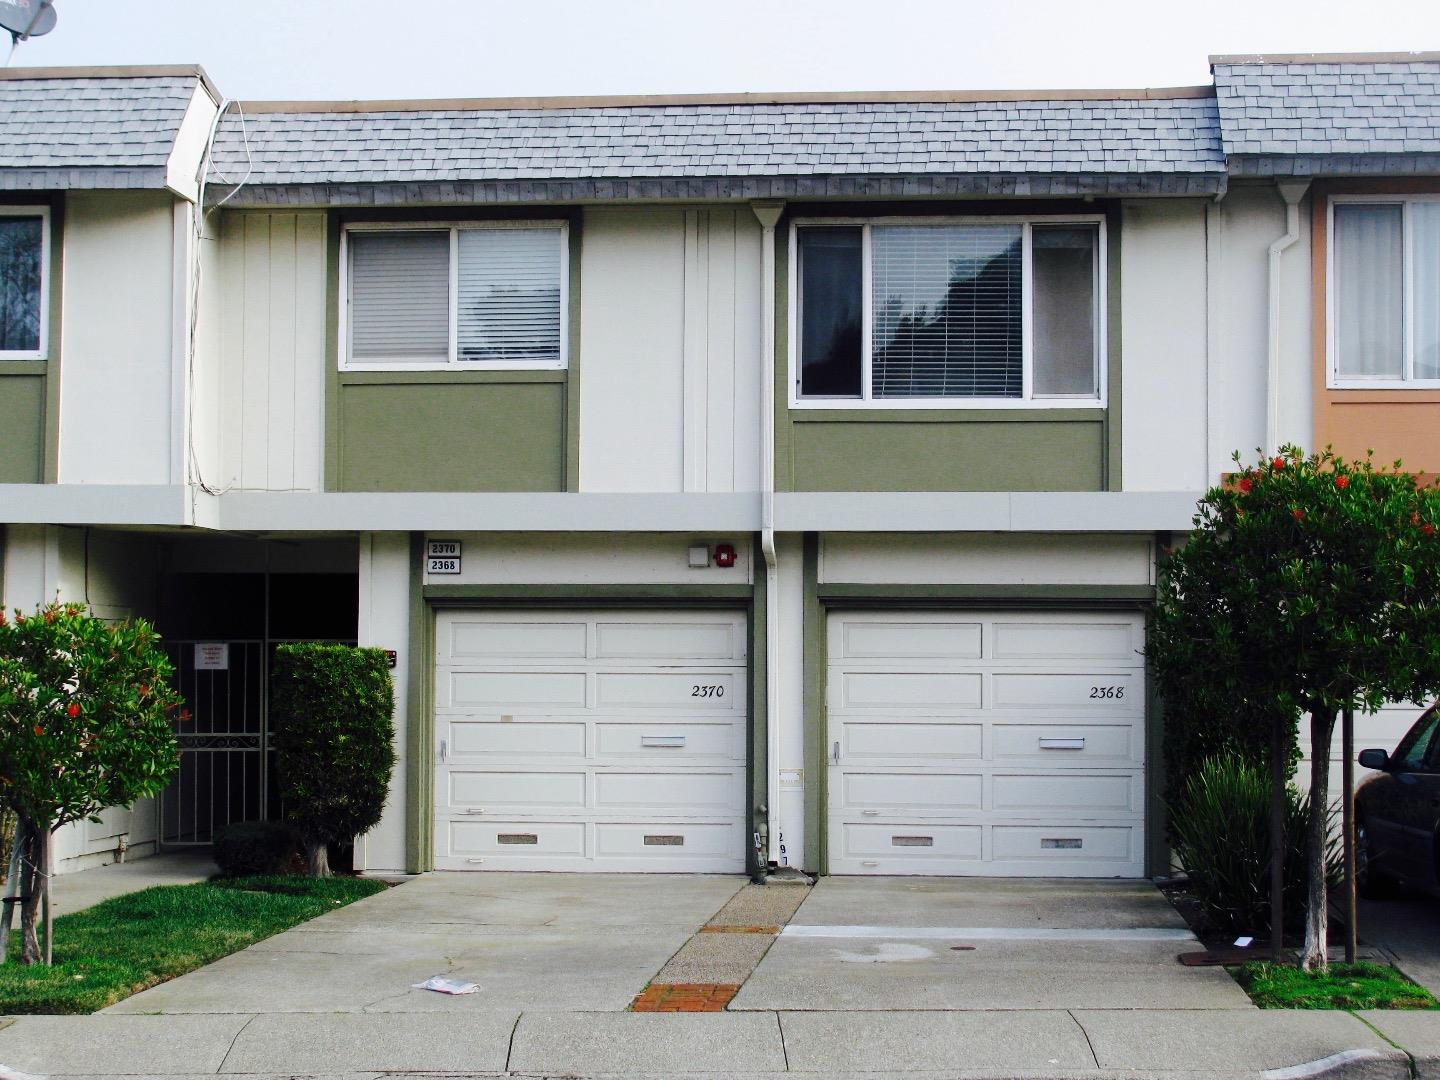 2370 Greendale Dr, South San Francisco, CA